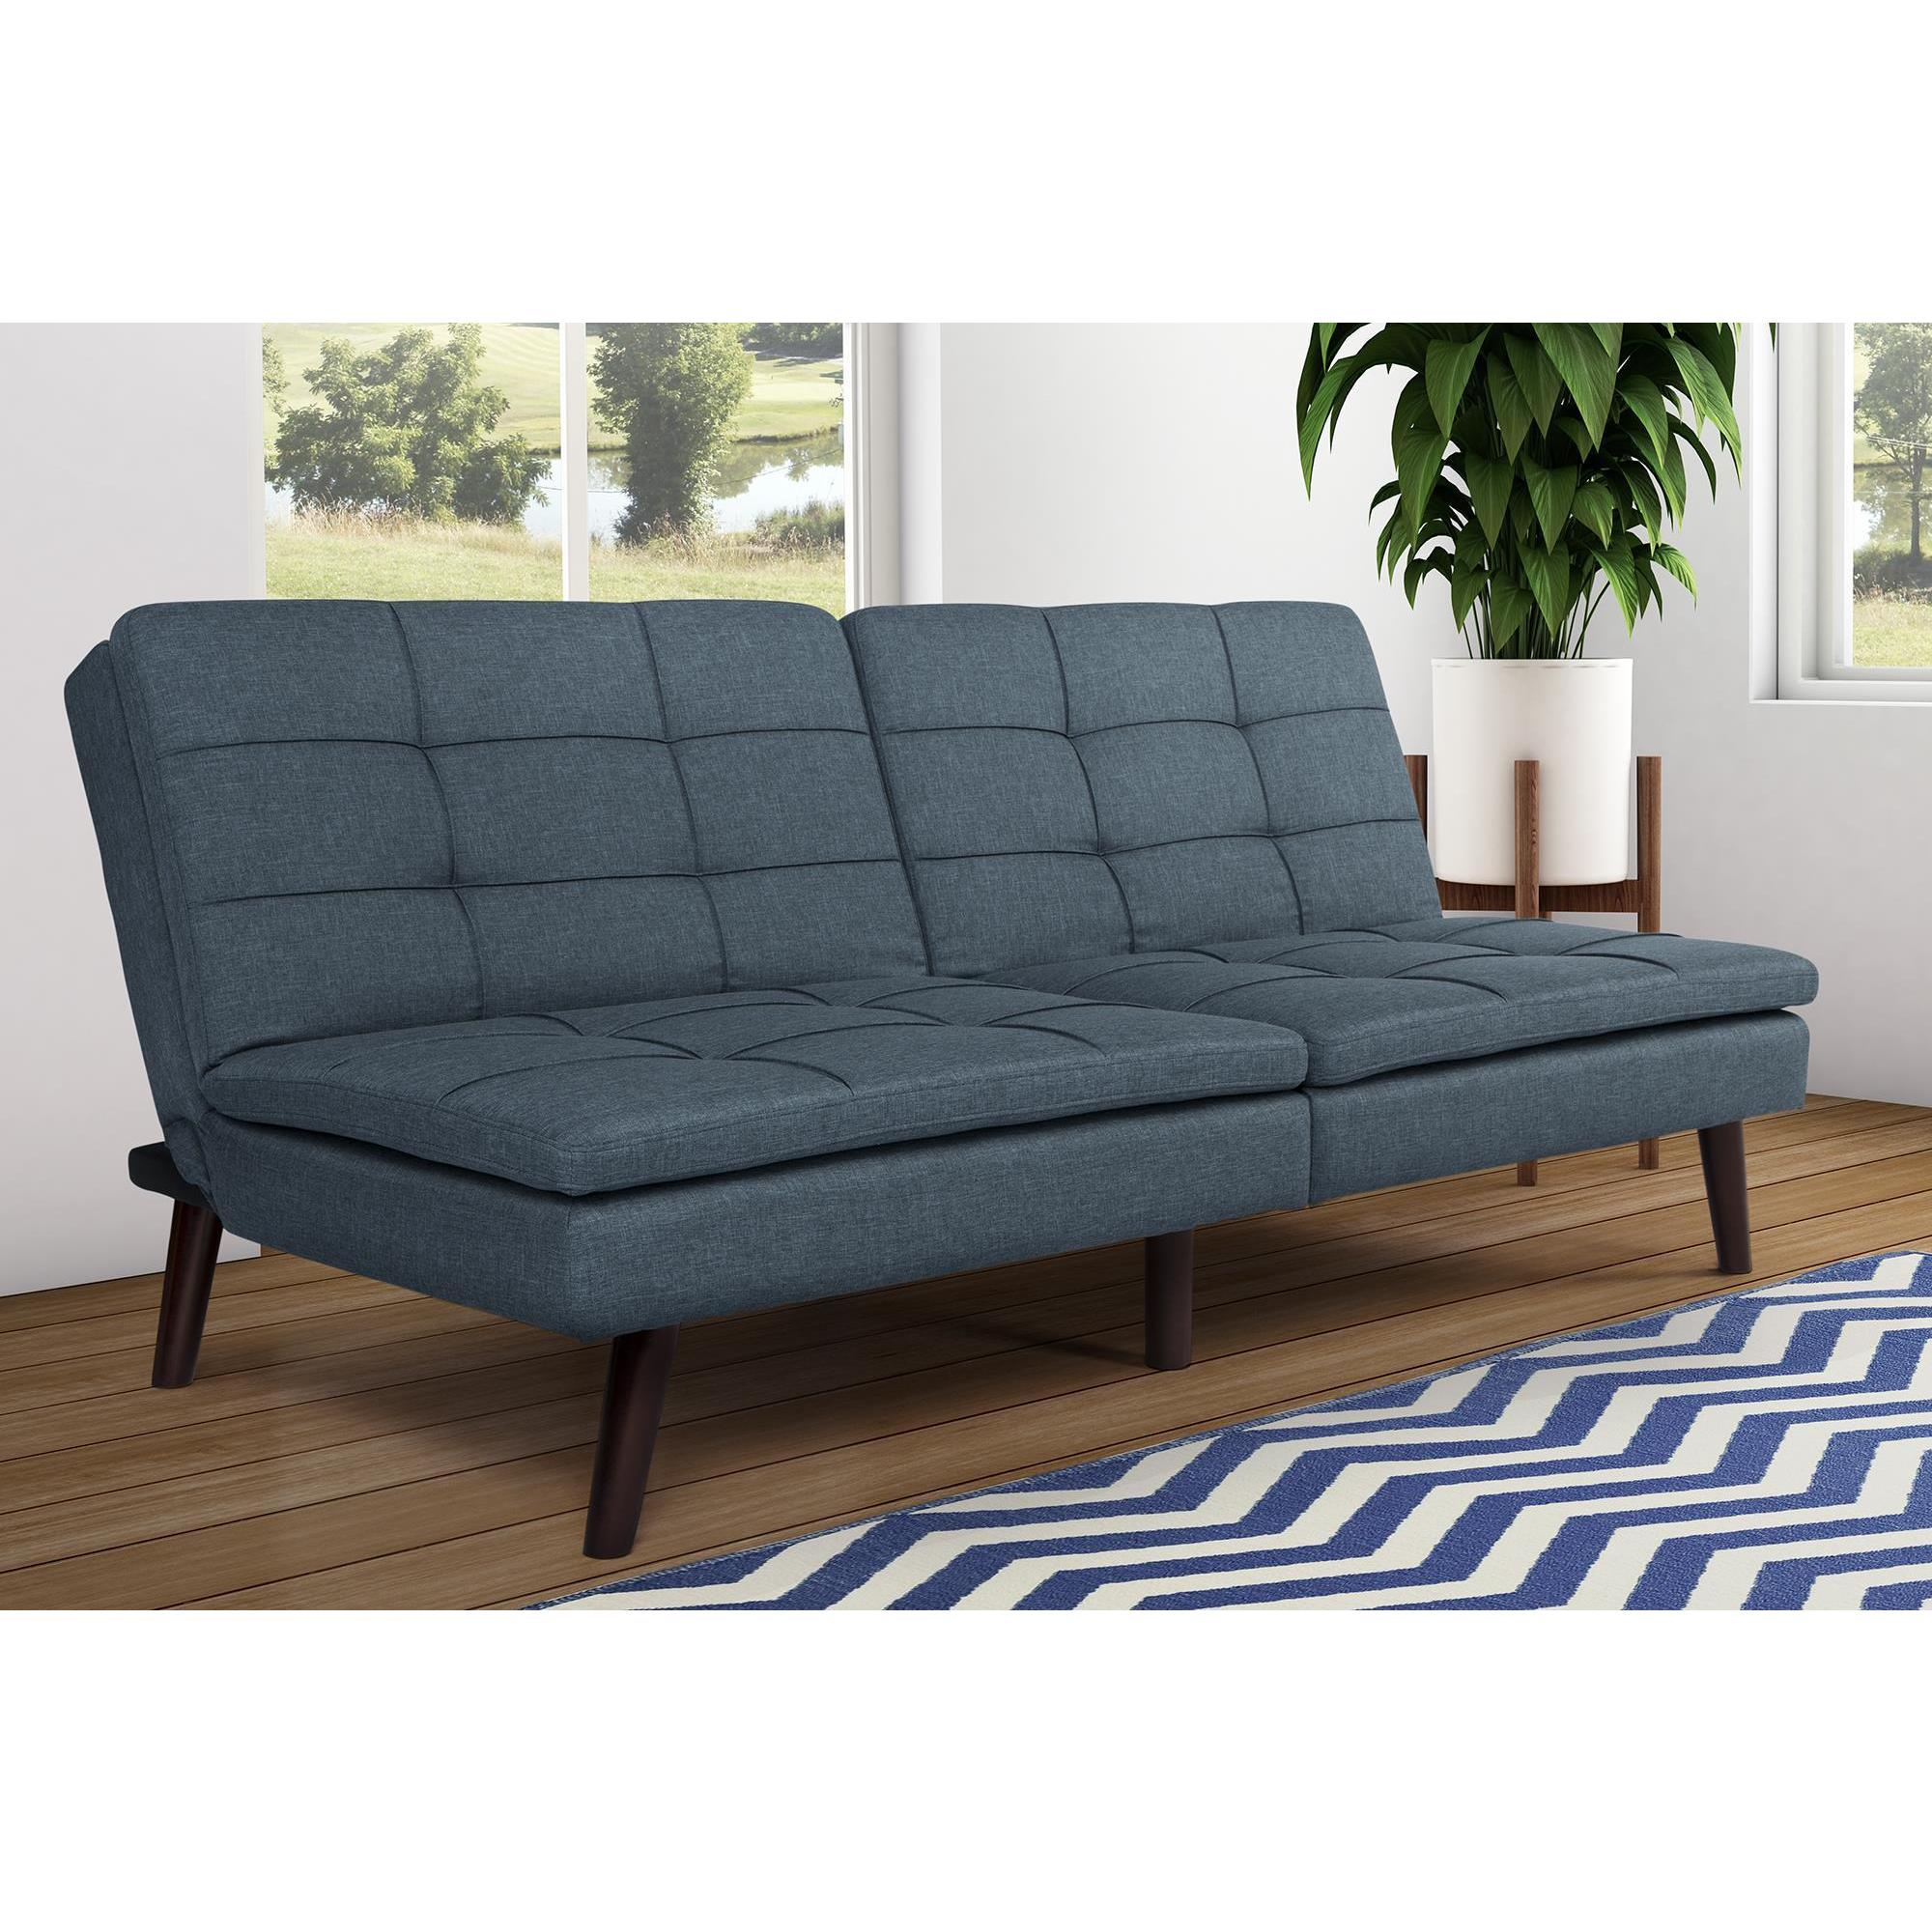 Avenue Greene Wesley Linen Pillowtop Futon Blue Free Shipping On Orders Over 45 Com 10511476